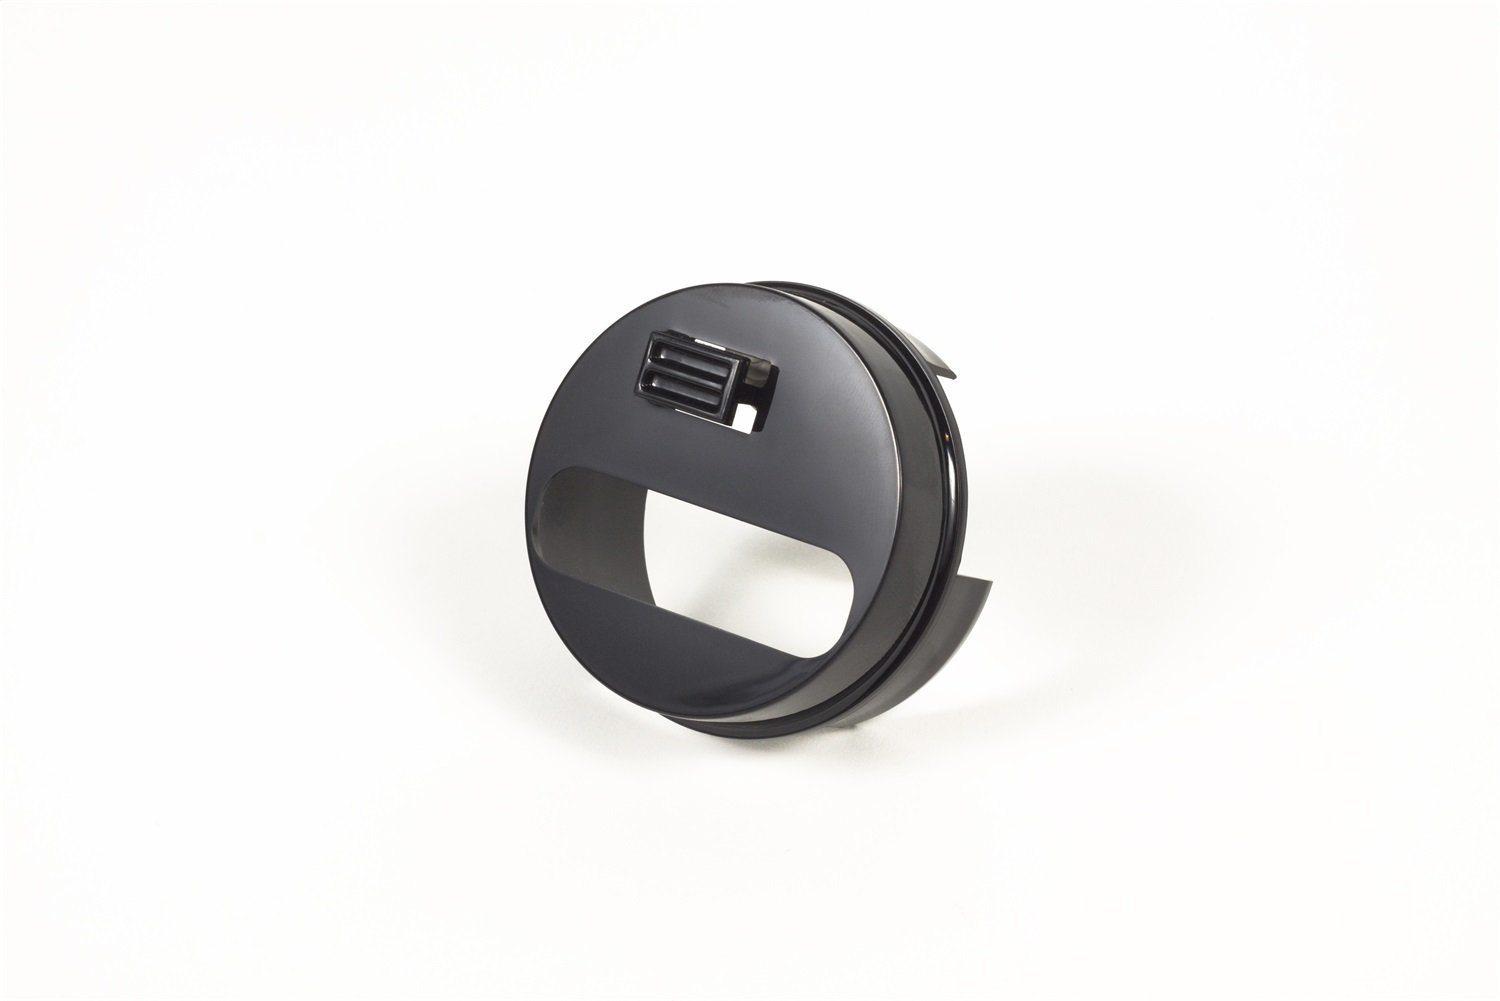 Bully Dog - 30420 - T-Slot Pod Mount Adapter for A-Pillar Cover - 2-1/16'' Gauge Insert by Bully Dog